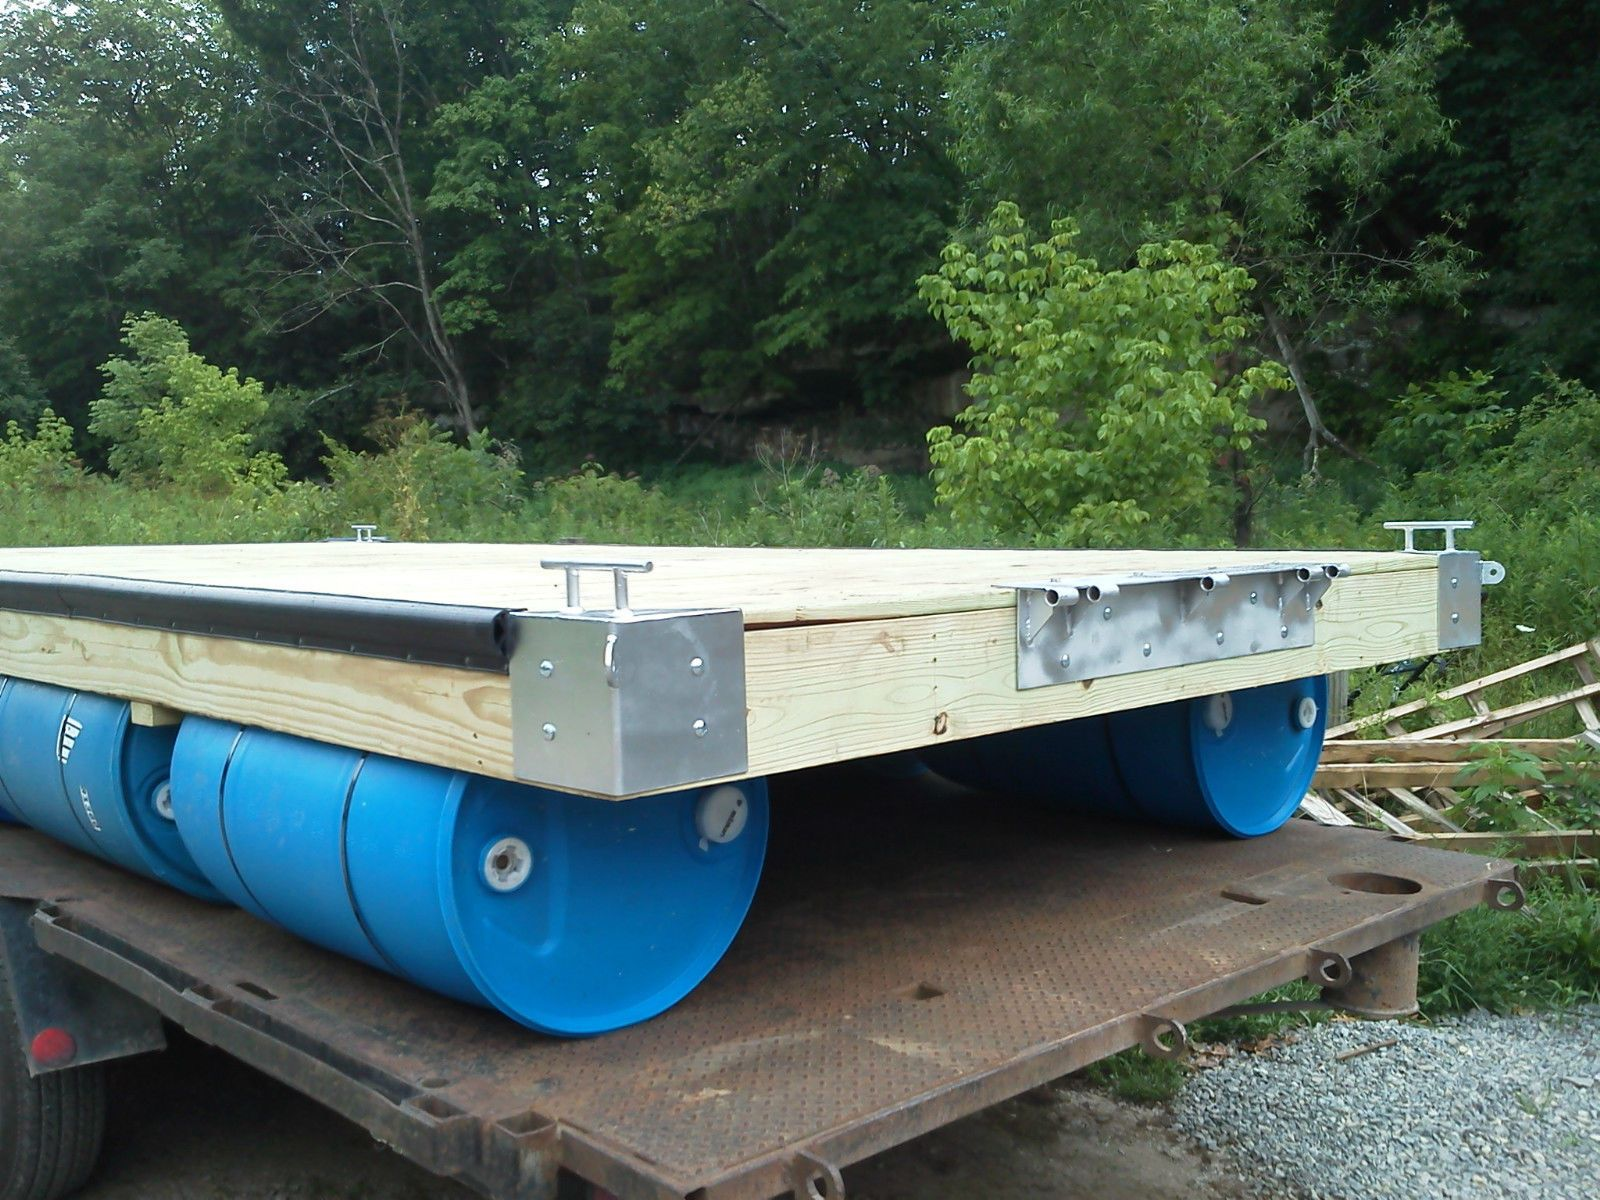 8' x 12' Floating Boat Dock With Blue Plastic 55 Gallon